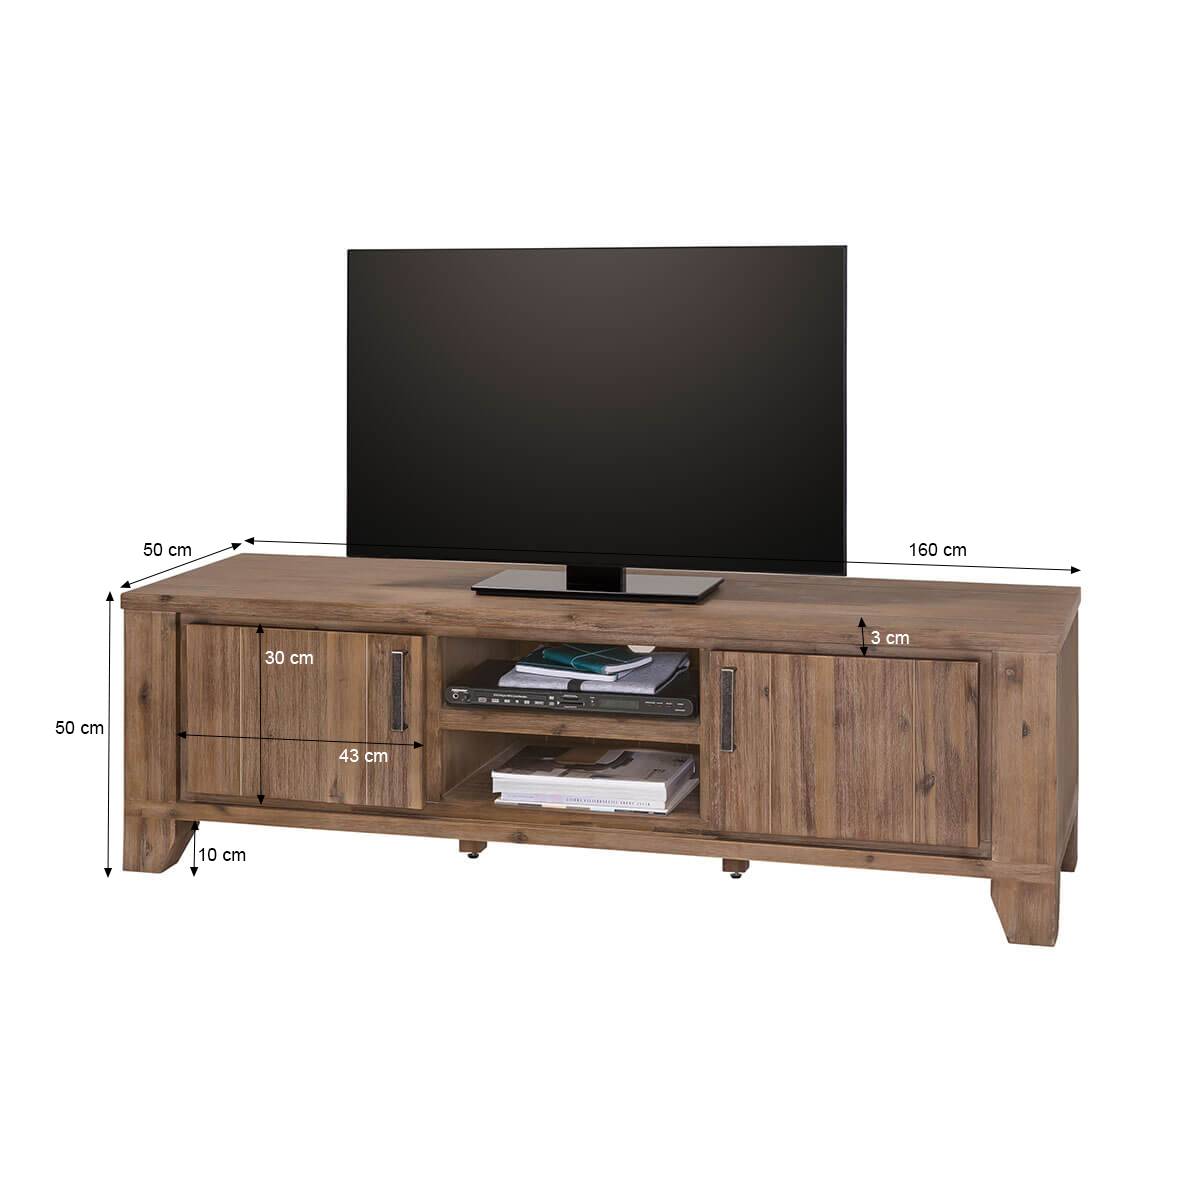 tv lowboard avora 160 cm breit in braun akazie massiv. Black Bedroom Furniture Sets. Home Design Ideas